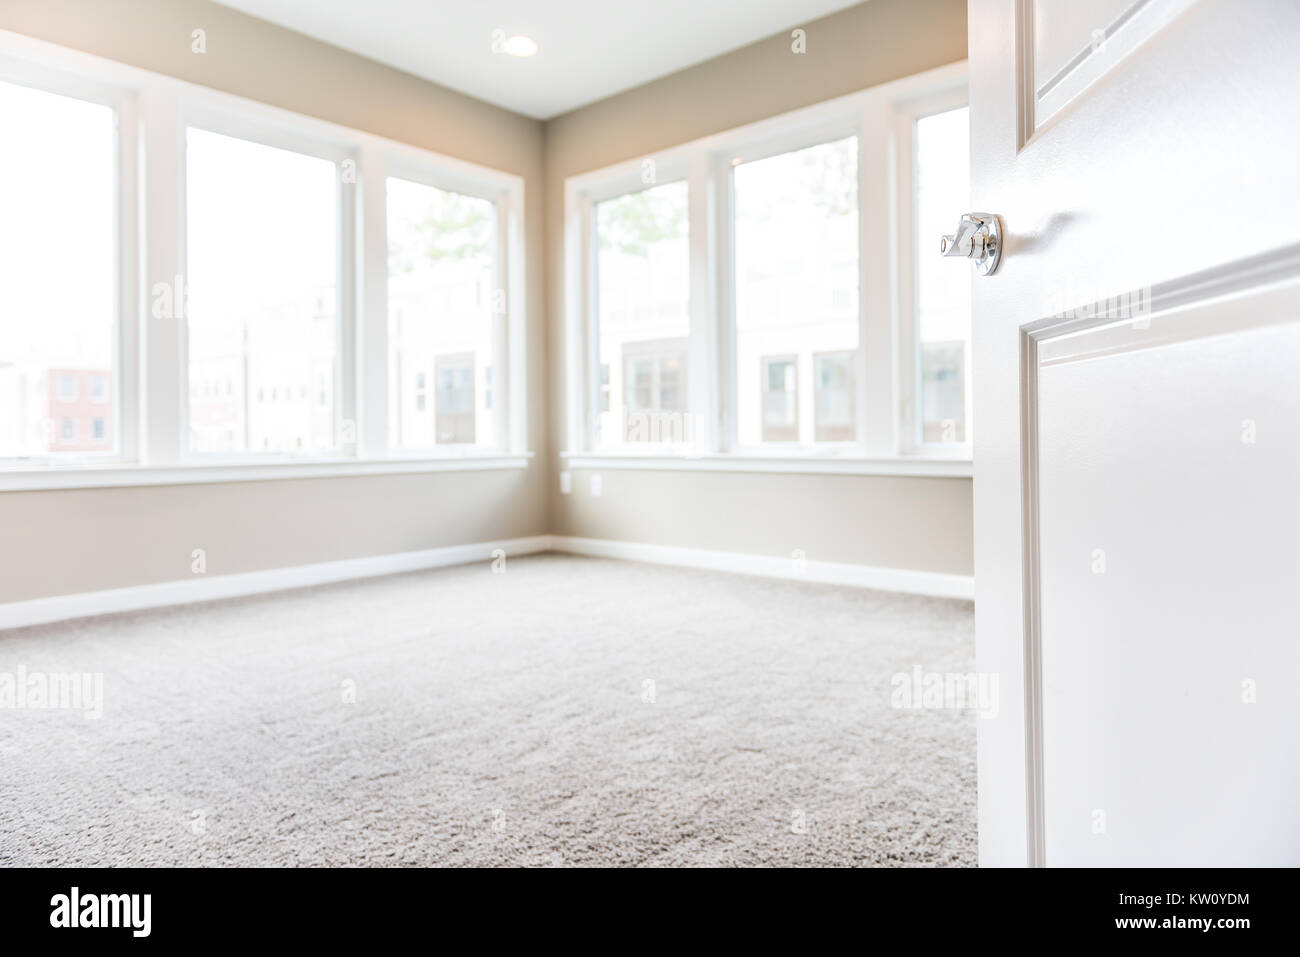 empty apartment bedroom. Empty Bedroom Entrance In New Modern Luxury Apartment Home With Many Large  Windows Bright Light And Carpet